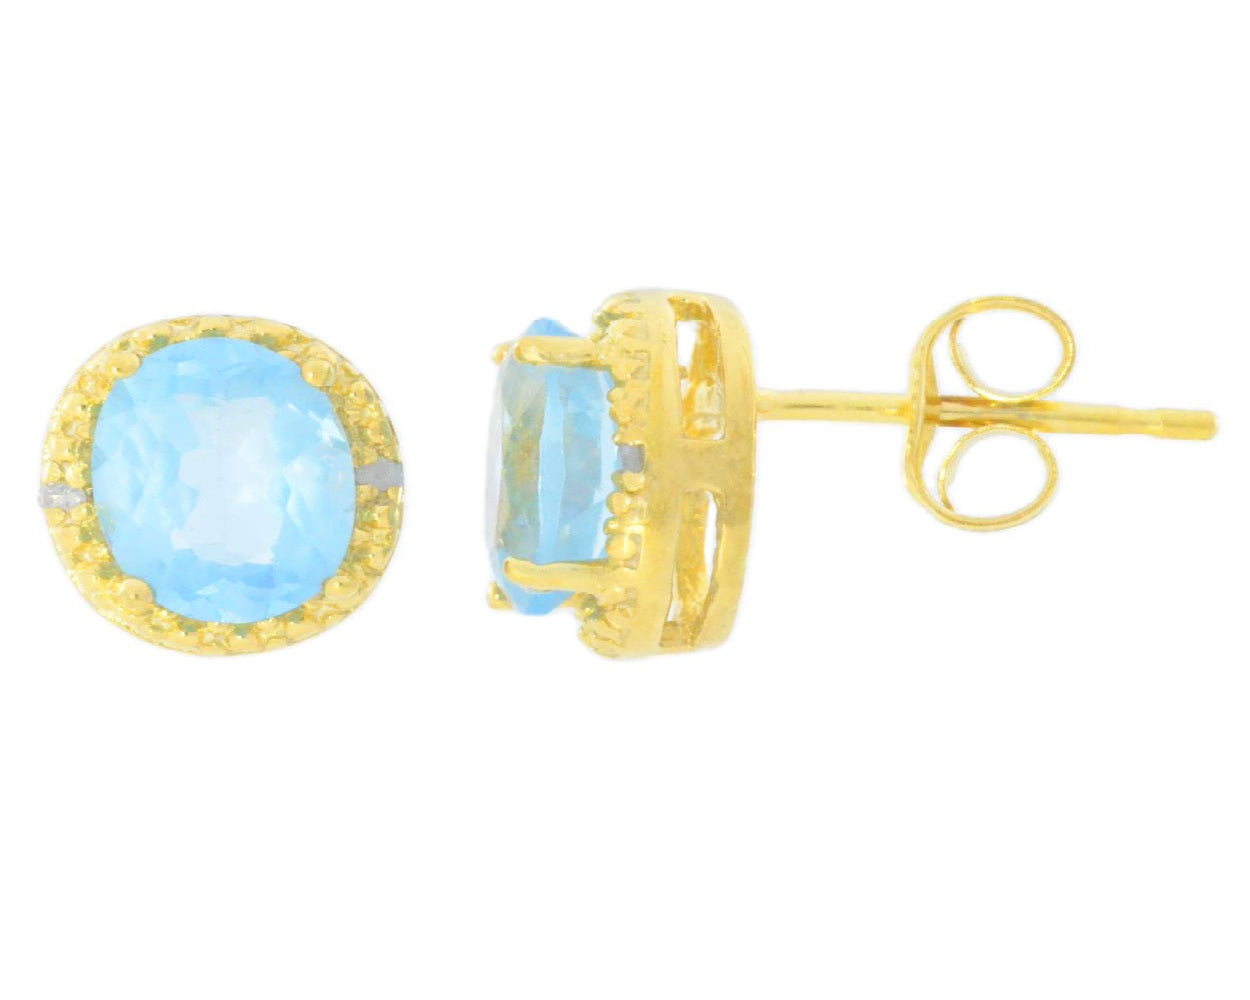 2 Ct Blue Topaz & Diamond Round Stud Earrings 14Kt Yellow Gold